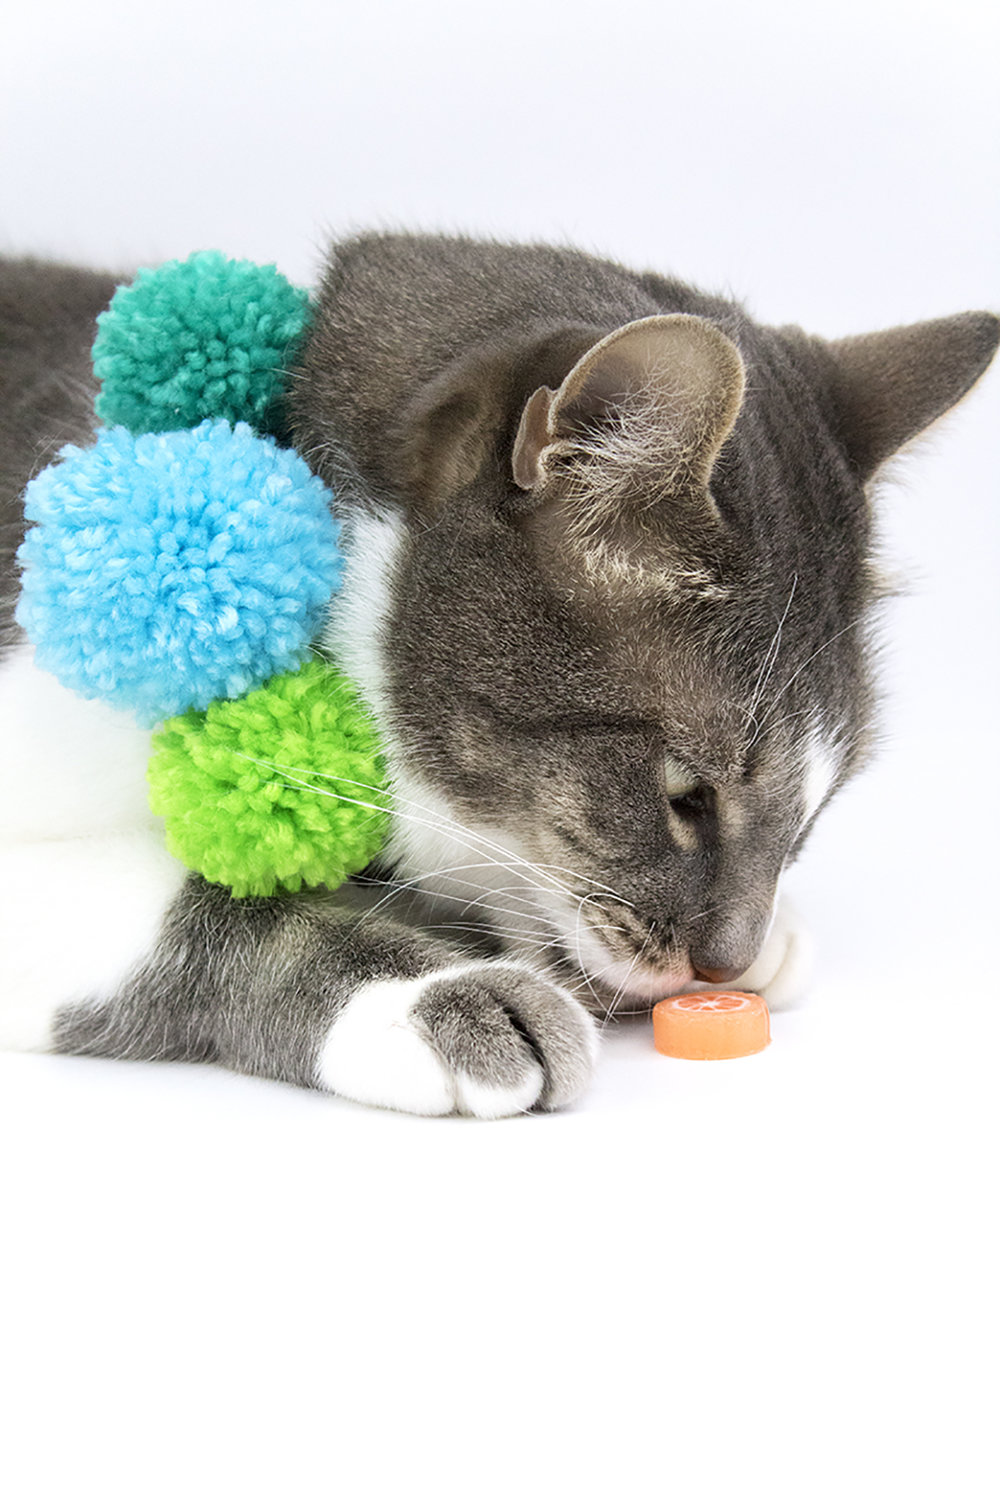 These pom pom collars are so cute, even cats can't help but love them! They're easy to make and fun to wear, so grab your pom-pom maker and your yarn. We're about to get crafty!